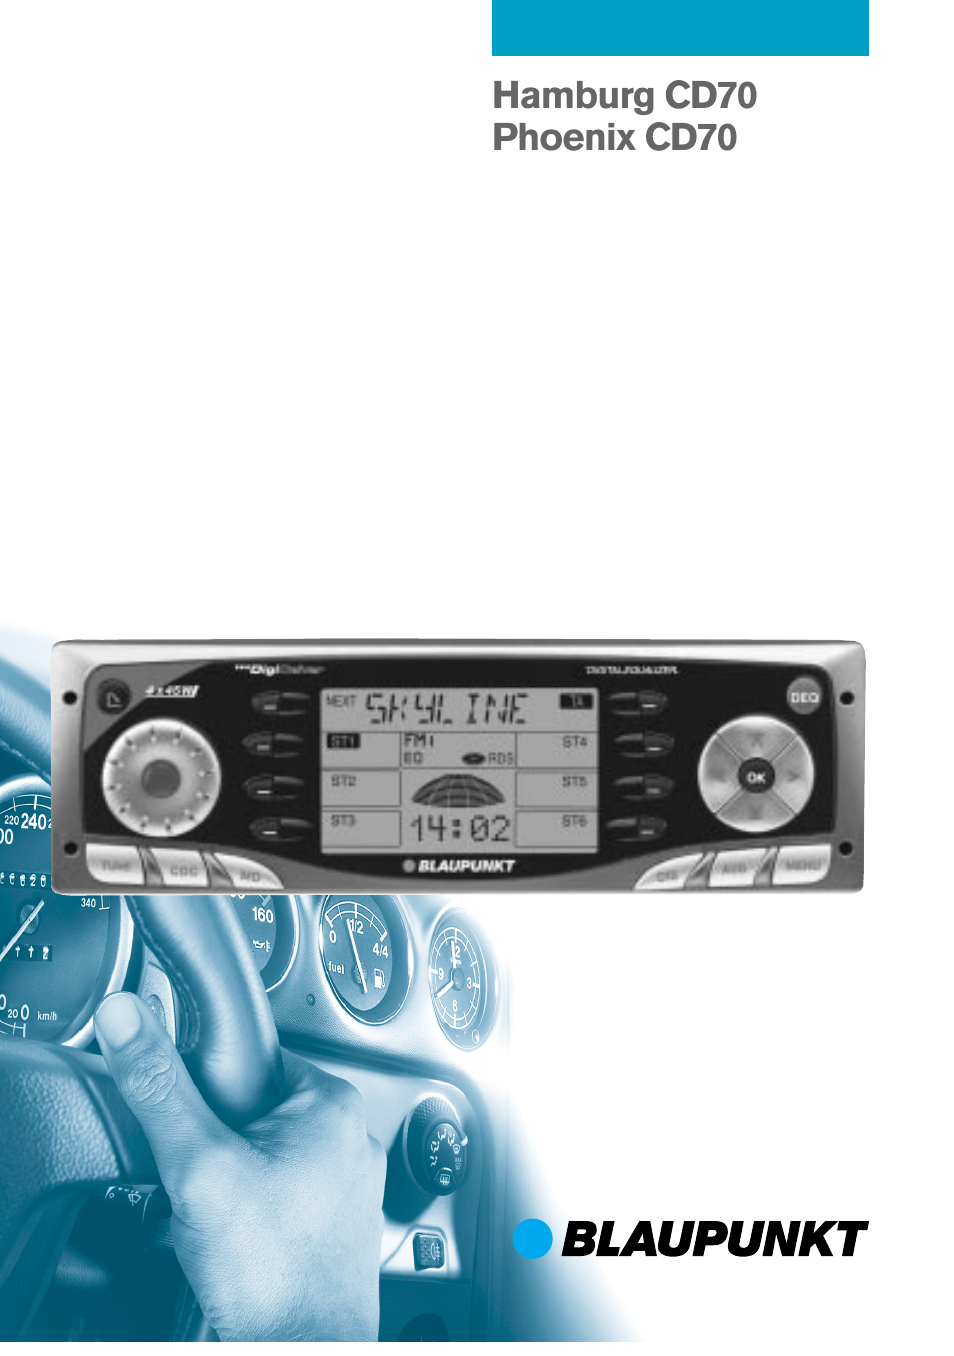 blaupunkt hamburg cd70 user manual 29 pages rh manualsdir com Blaupunkt Car Audio Models blaupunkt 520 car stereo manual